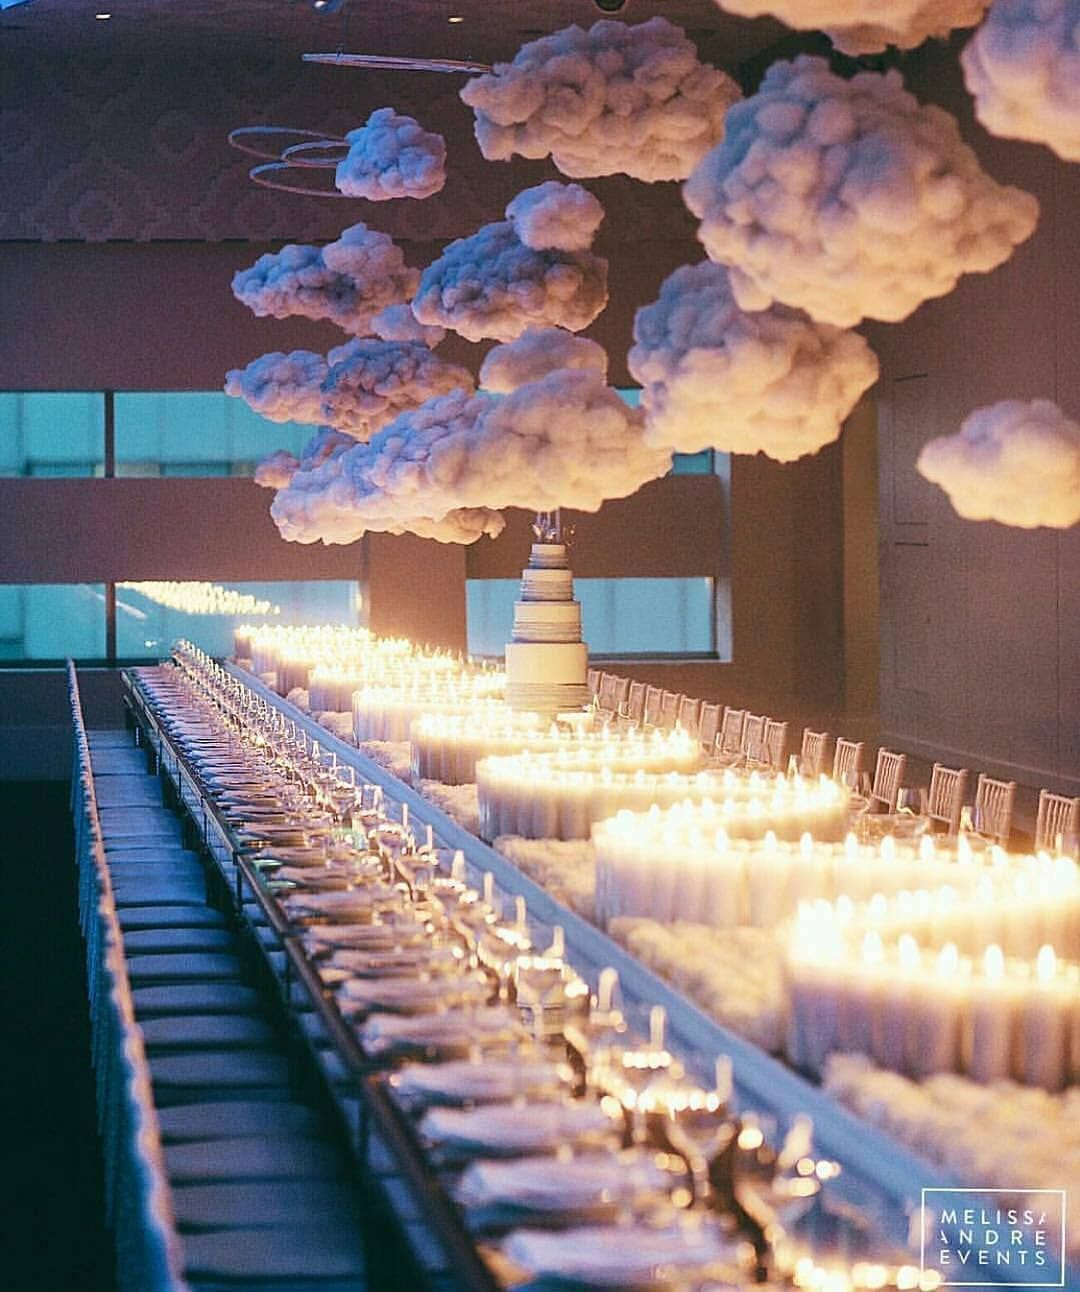 On Cloud 9 Ahoufeinspired At Melissaandre Photography